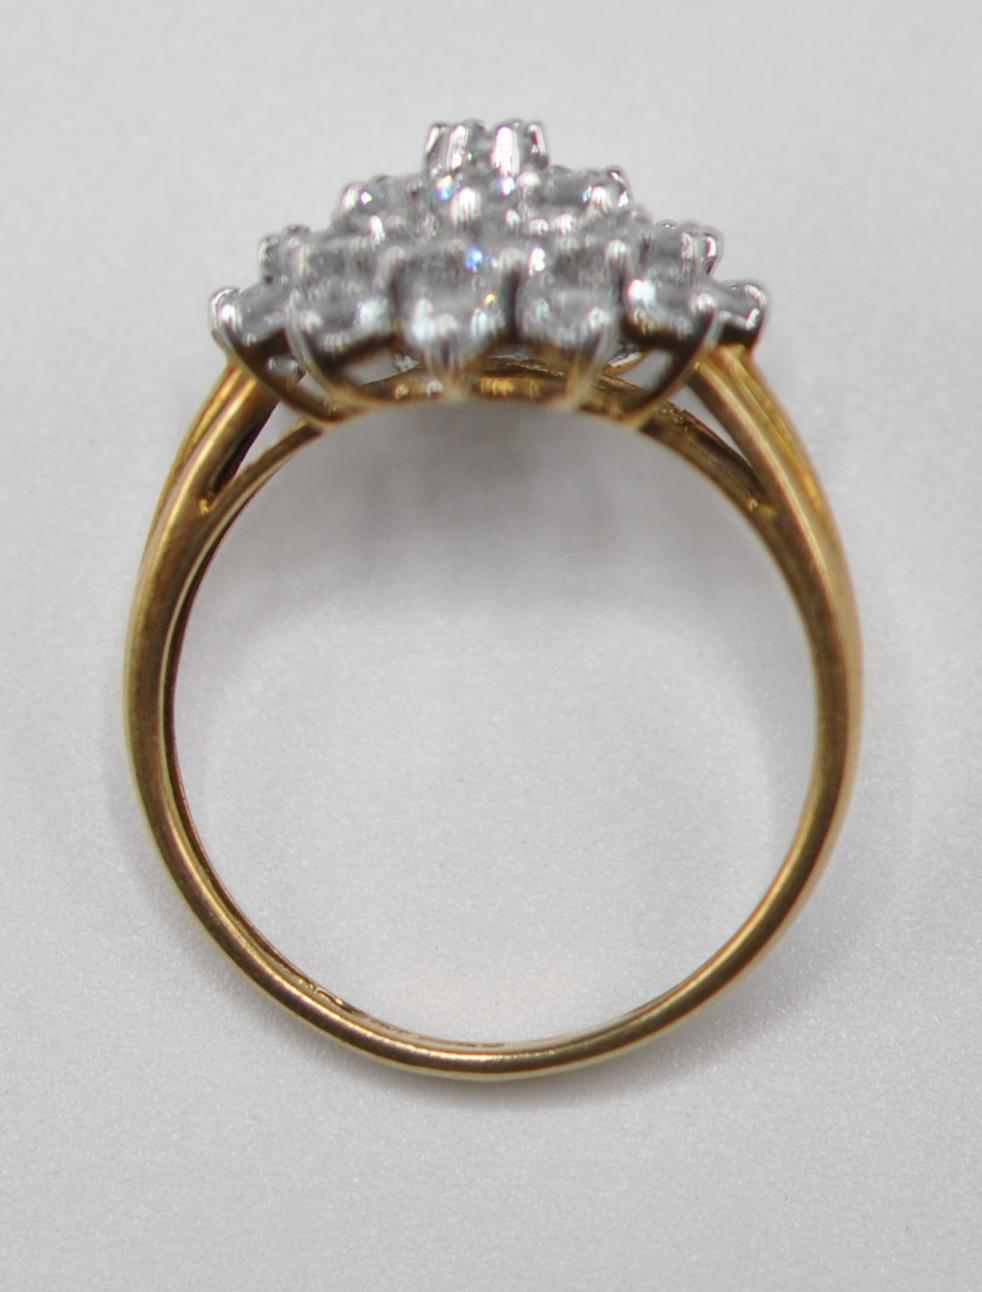 HALLMARKED 9CT GOLD AND BLUE STONE CLUSTER RING - Image 6 of 7